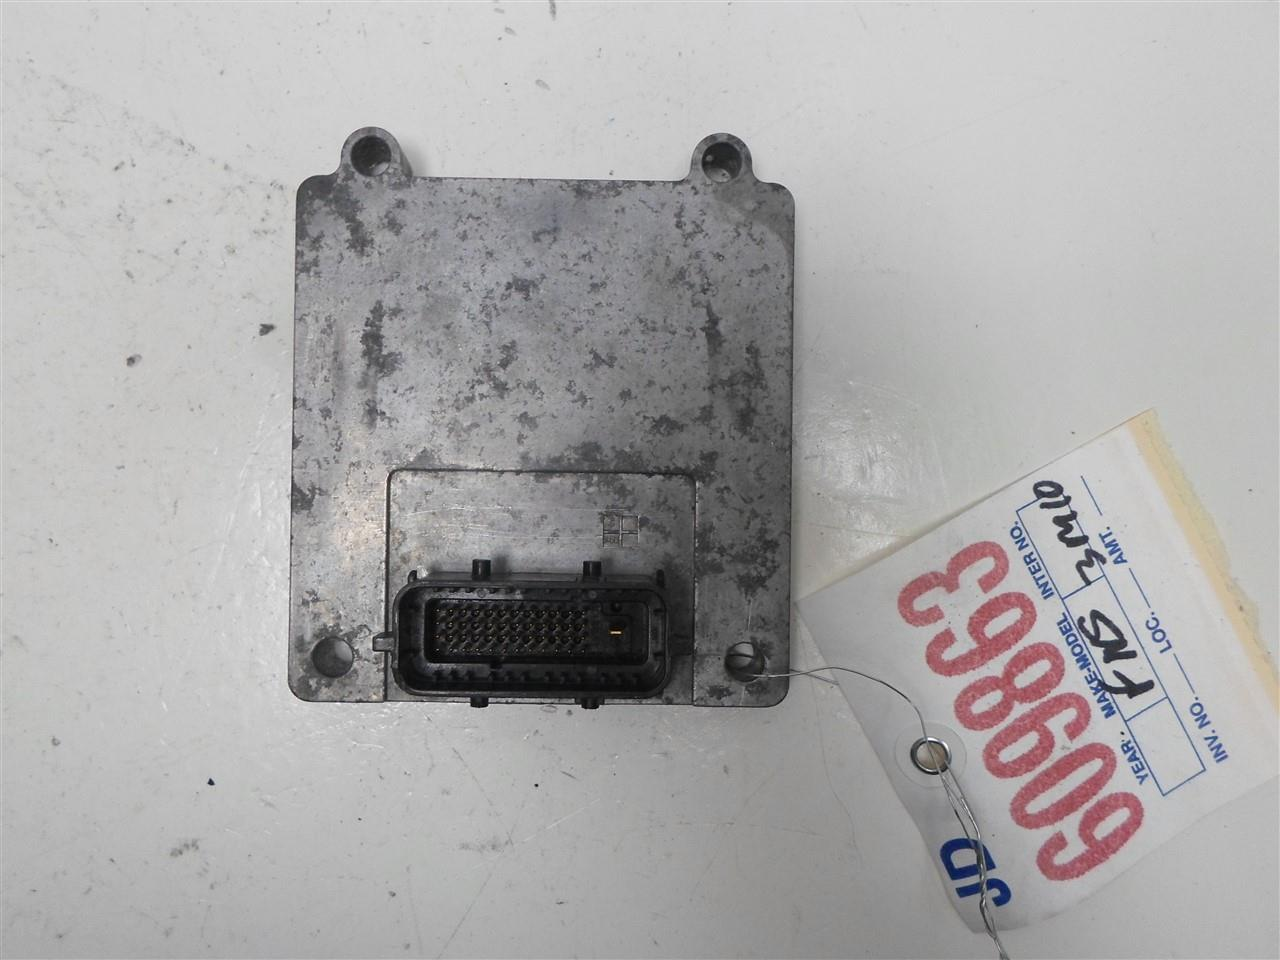 2006 06 Chevrolet Hhr Ion Cobalt Engine Control Module Ecu Ecm Pcm